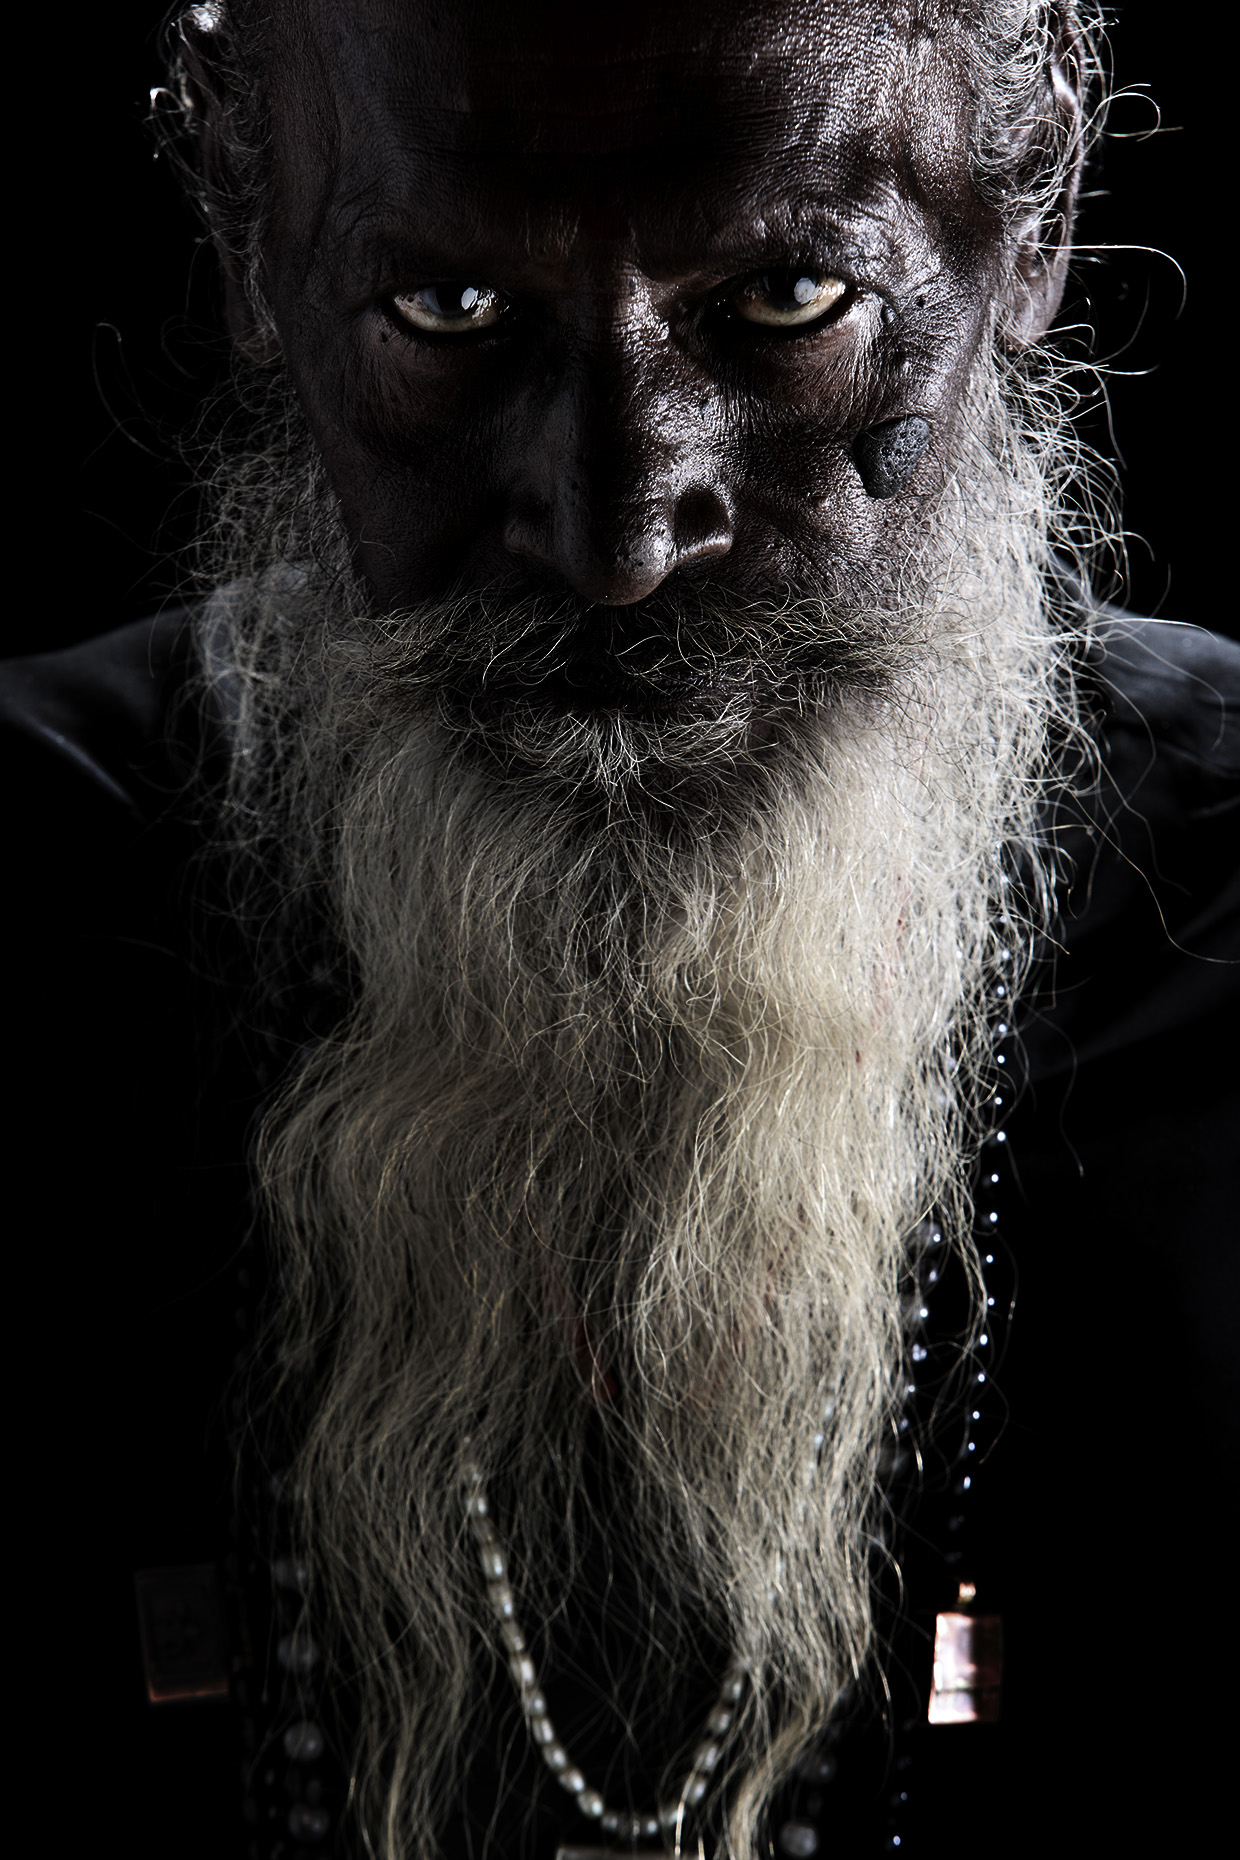 Studio portrait of white beard man at the Kumbh Mela